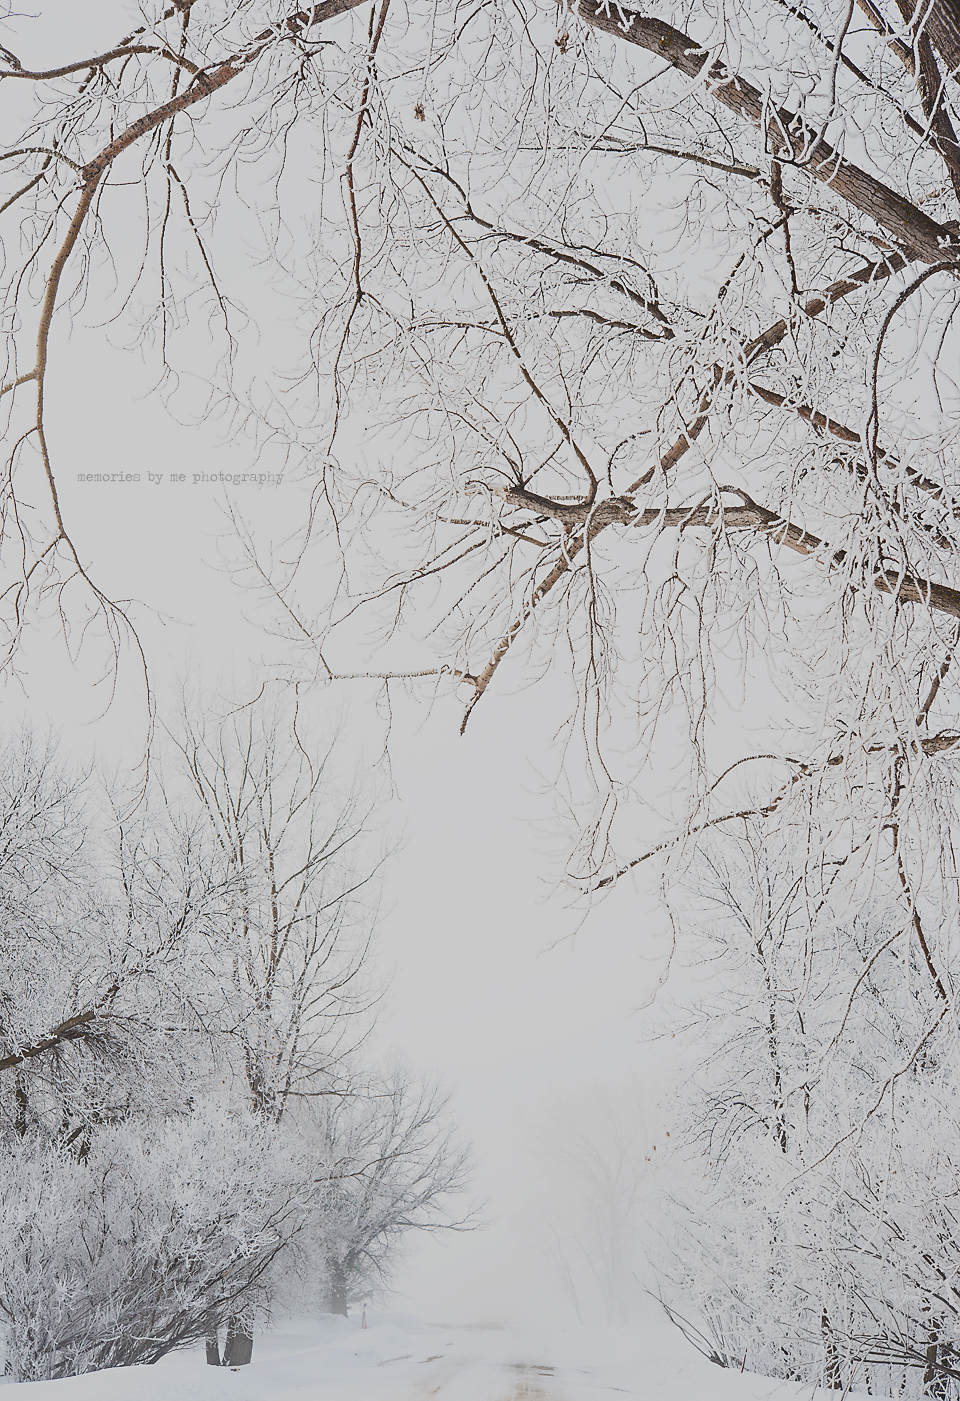 Snow On First Day Of Spring Makes Me >> Snow Memories By Me Photography